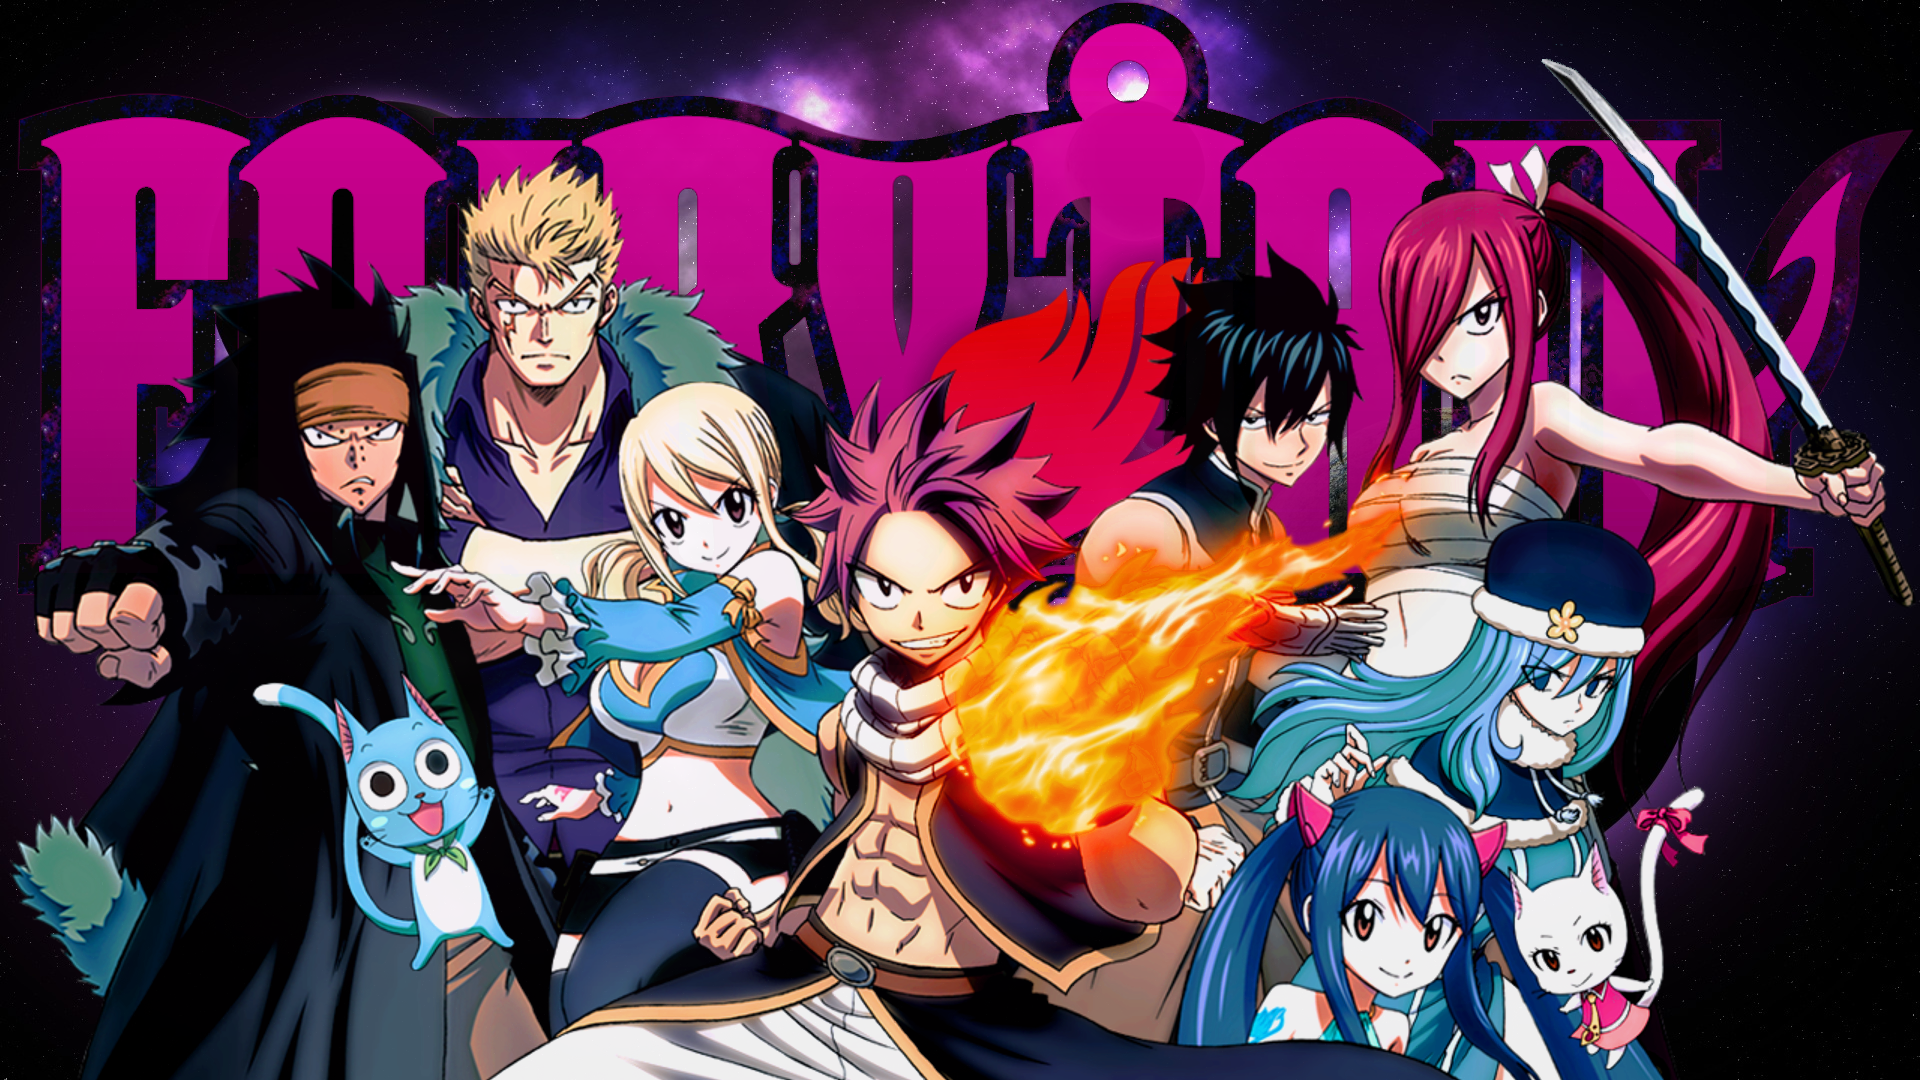 Fairy Tail Wallpaper Fondo De Pantalla Hd Fondo De